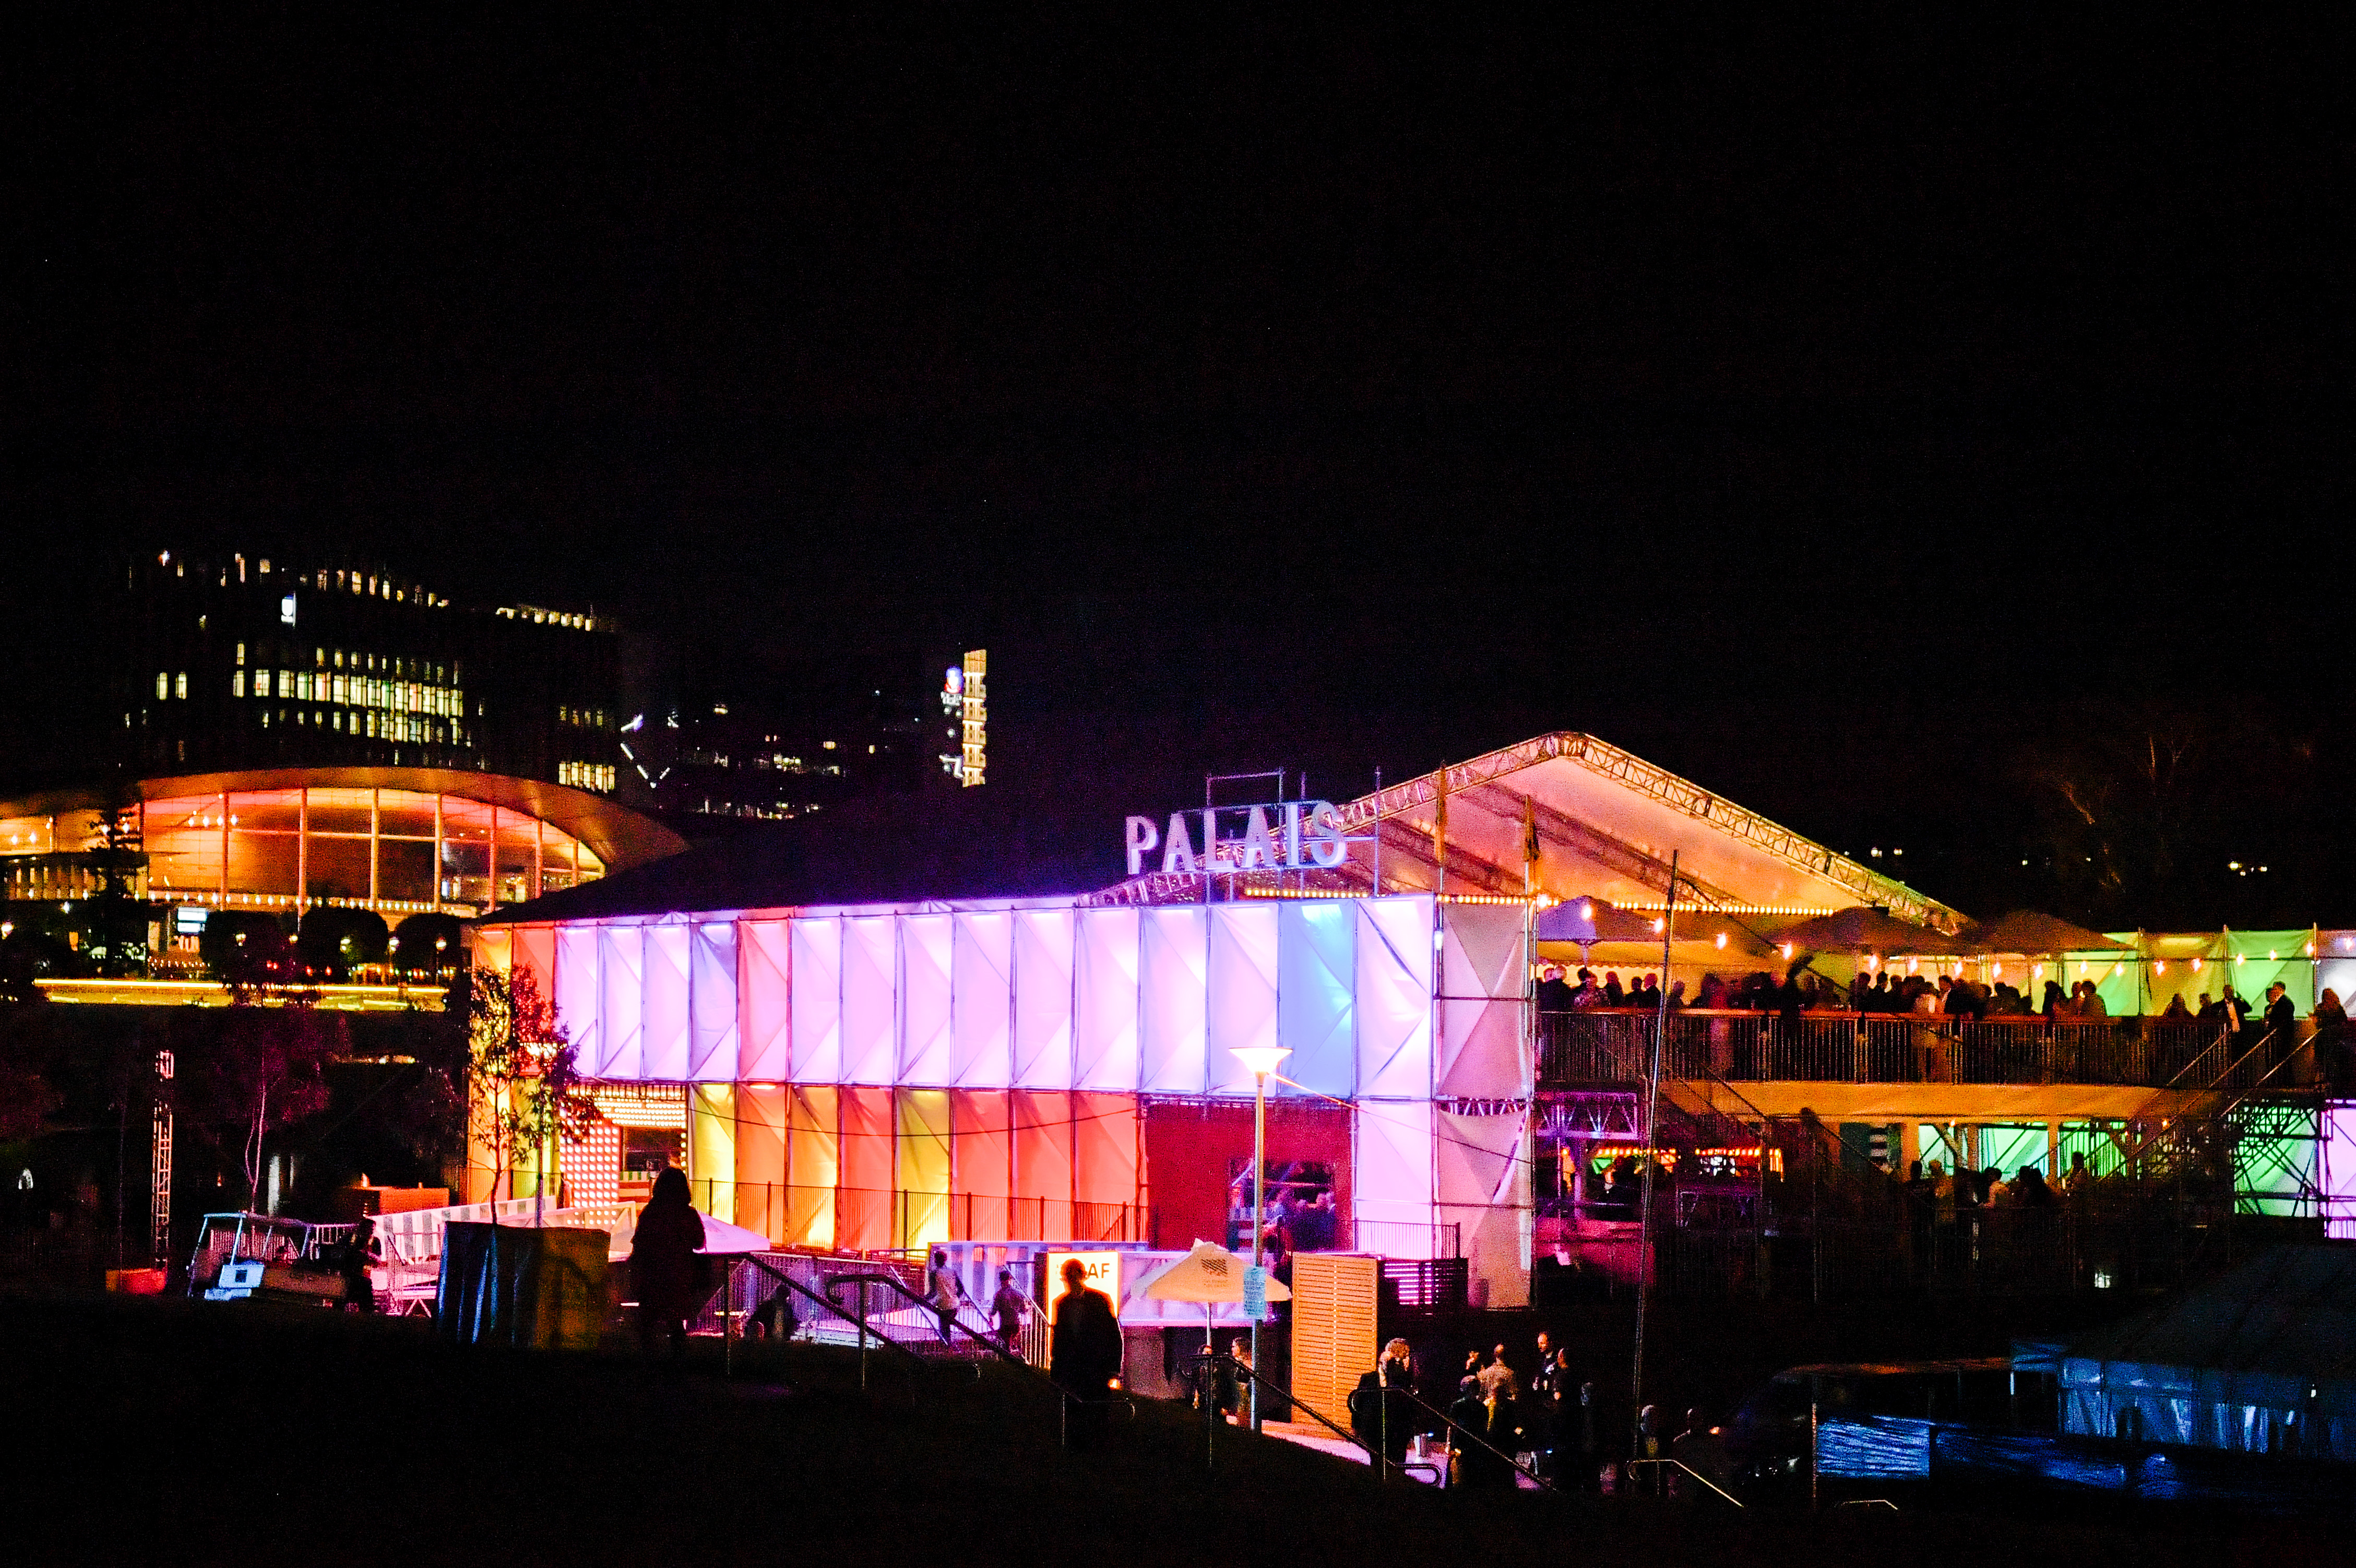 The Palais at night